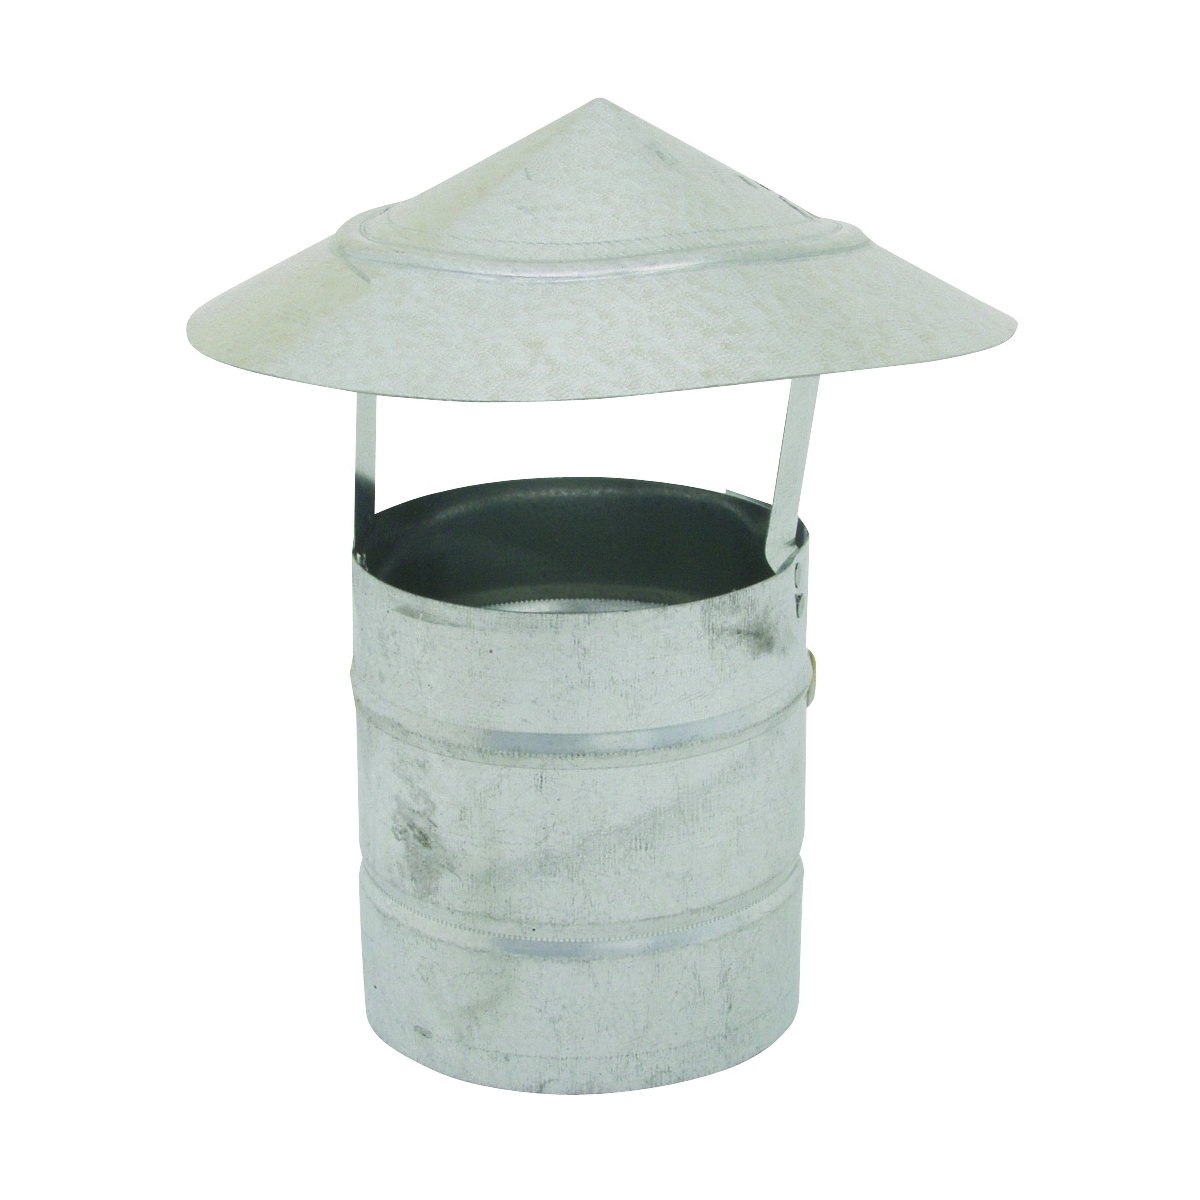 Picture of BILLY PENN 8101 Chimney Hood, 4 in Dia, Galvanized Steel